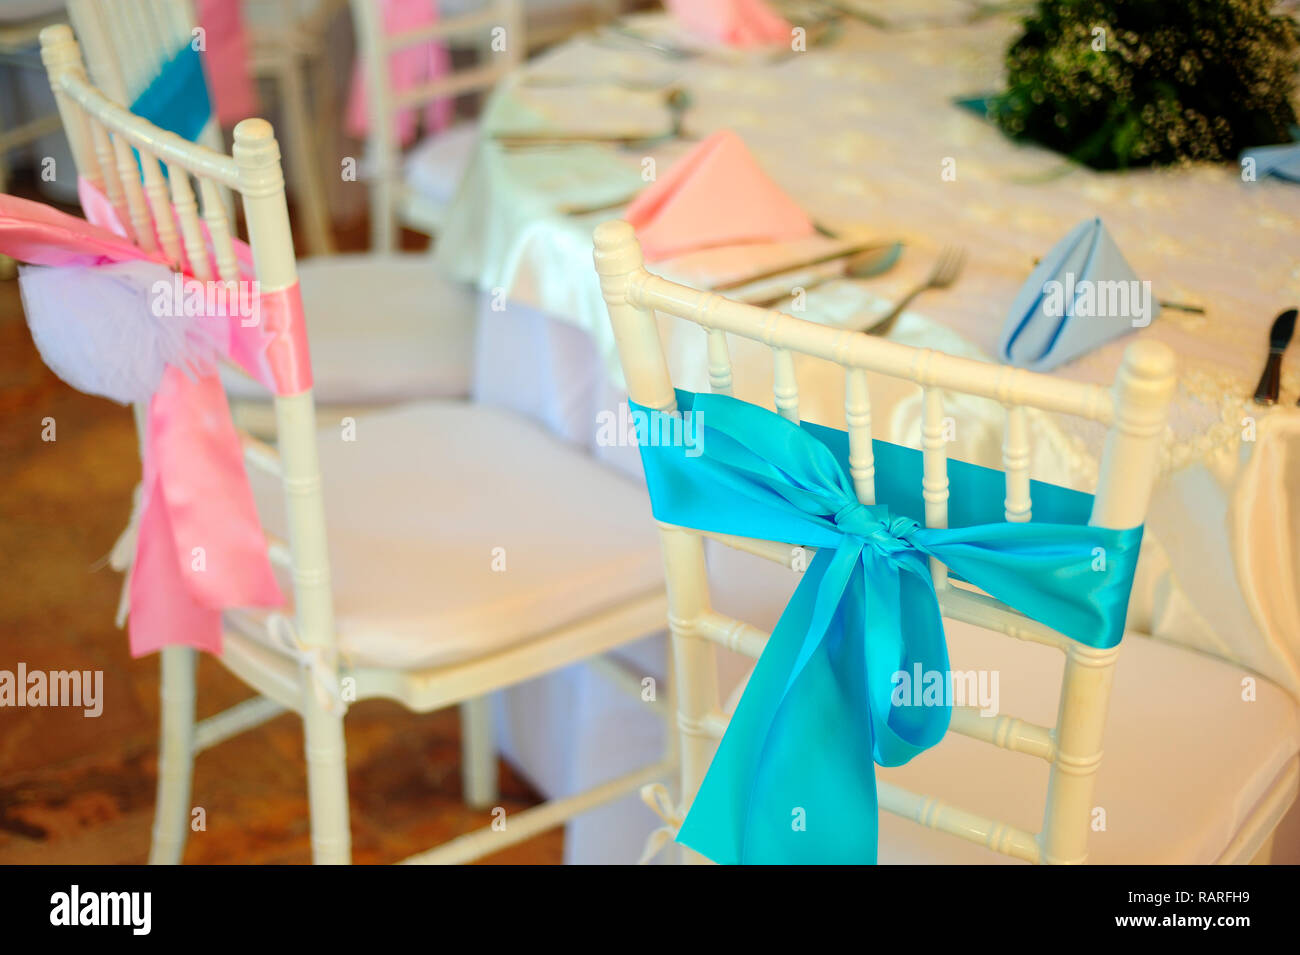 MERIDA, YUC/MEXICO - NOV 18, 2017: Twin babies's baptismal party venue decoration and gifts for guests - Stock Image